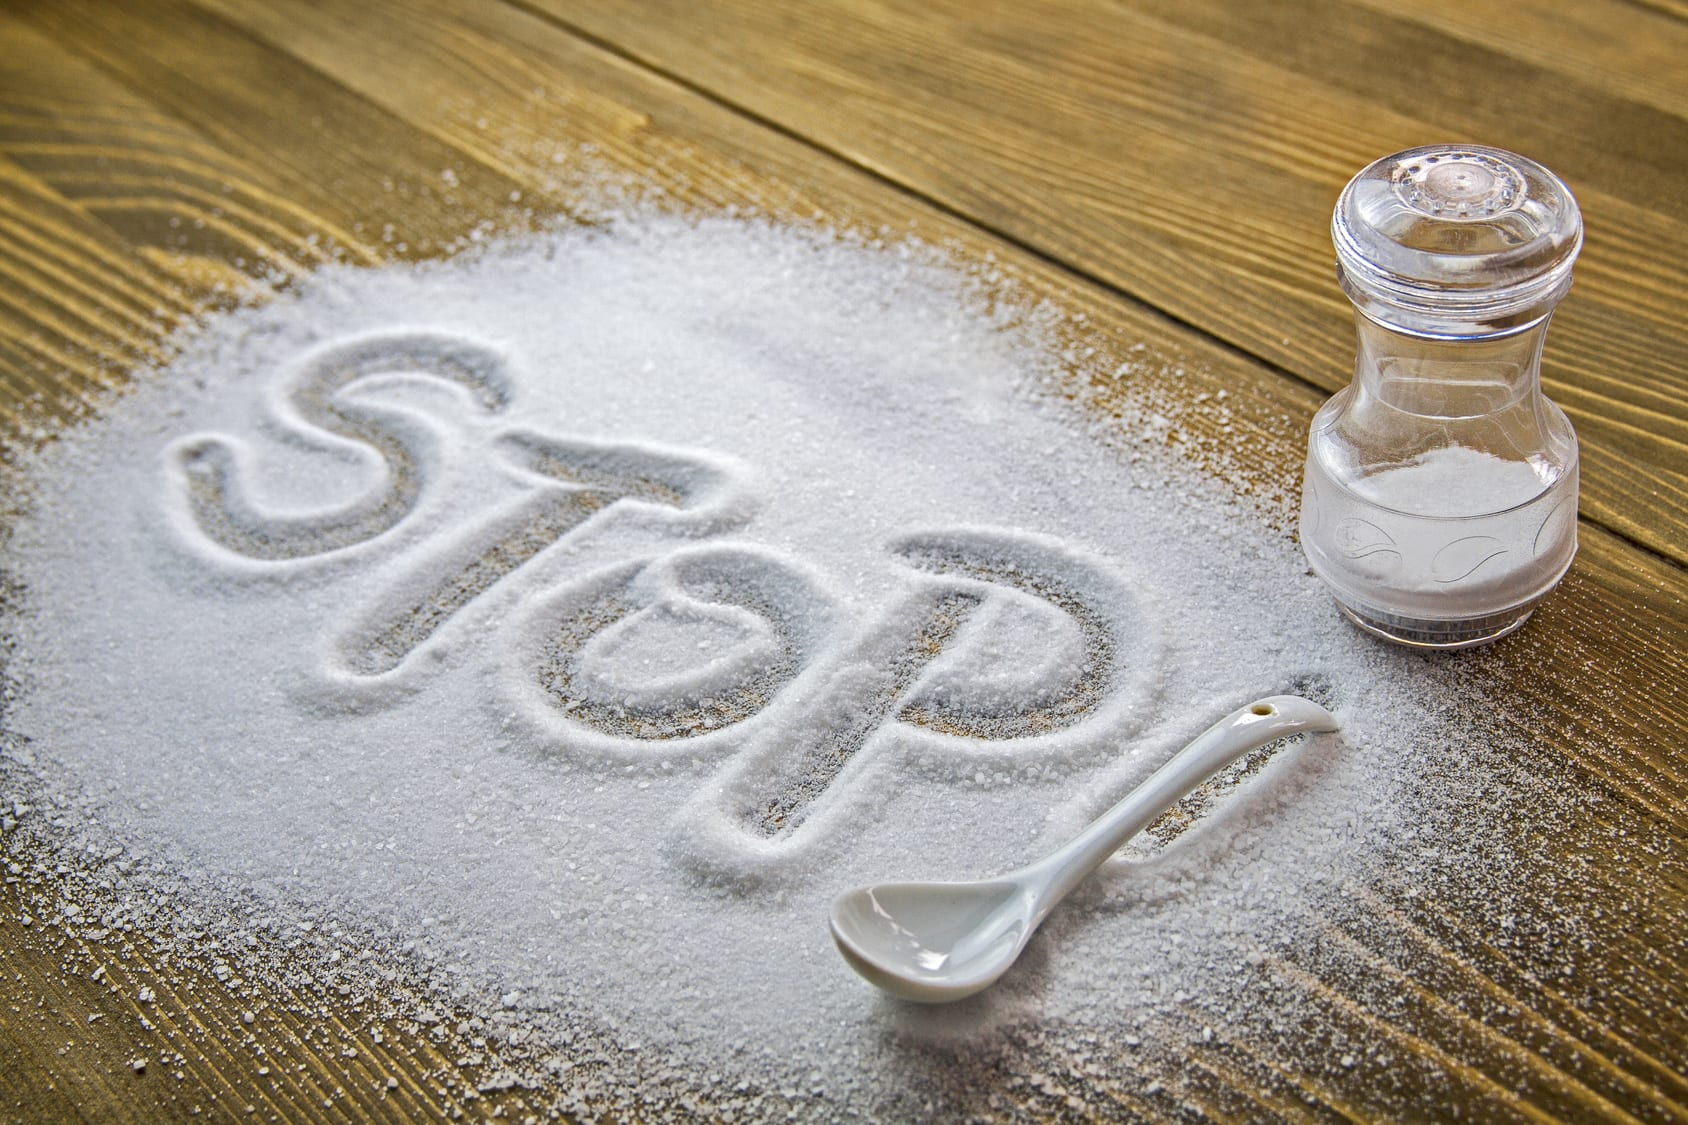 Losing 5 pounds overnight- stop salt intake